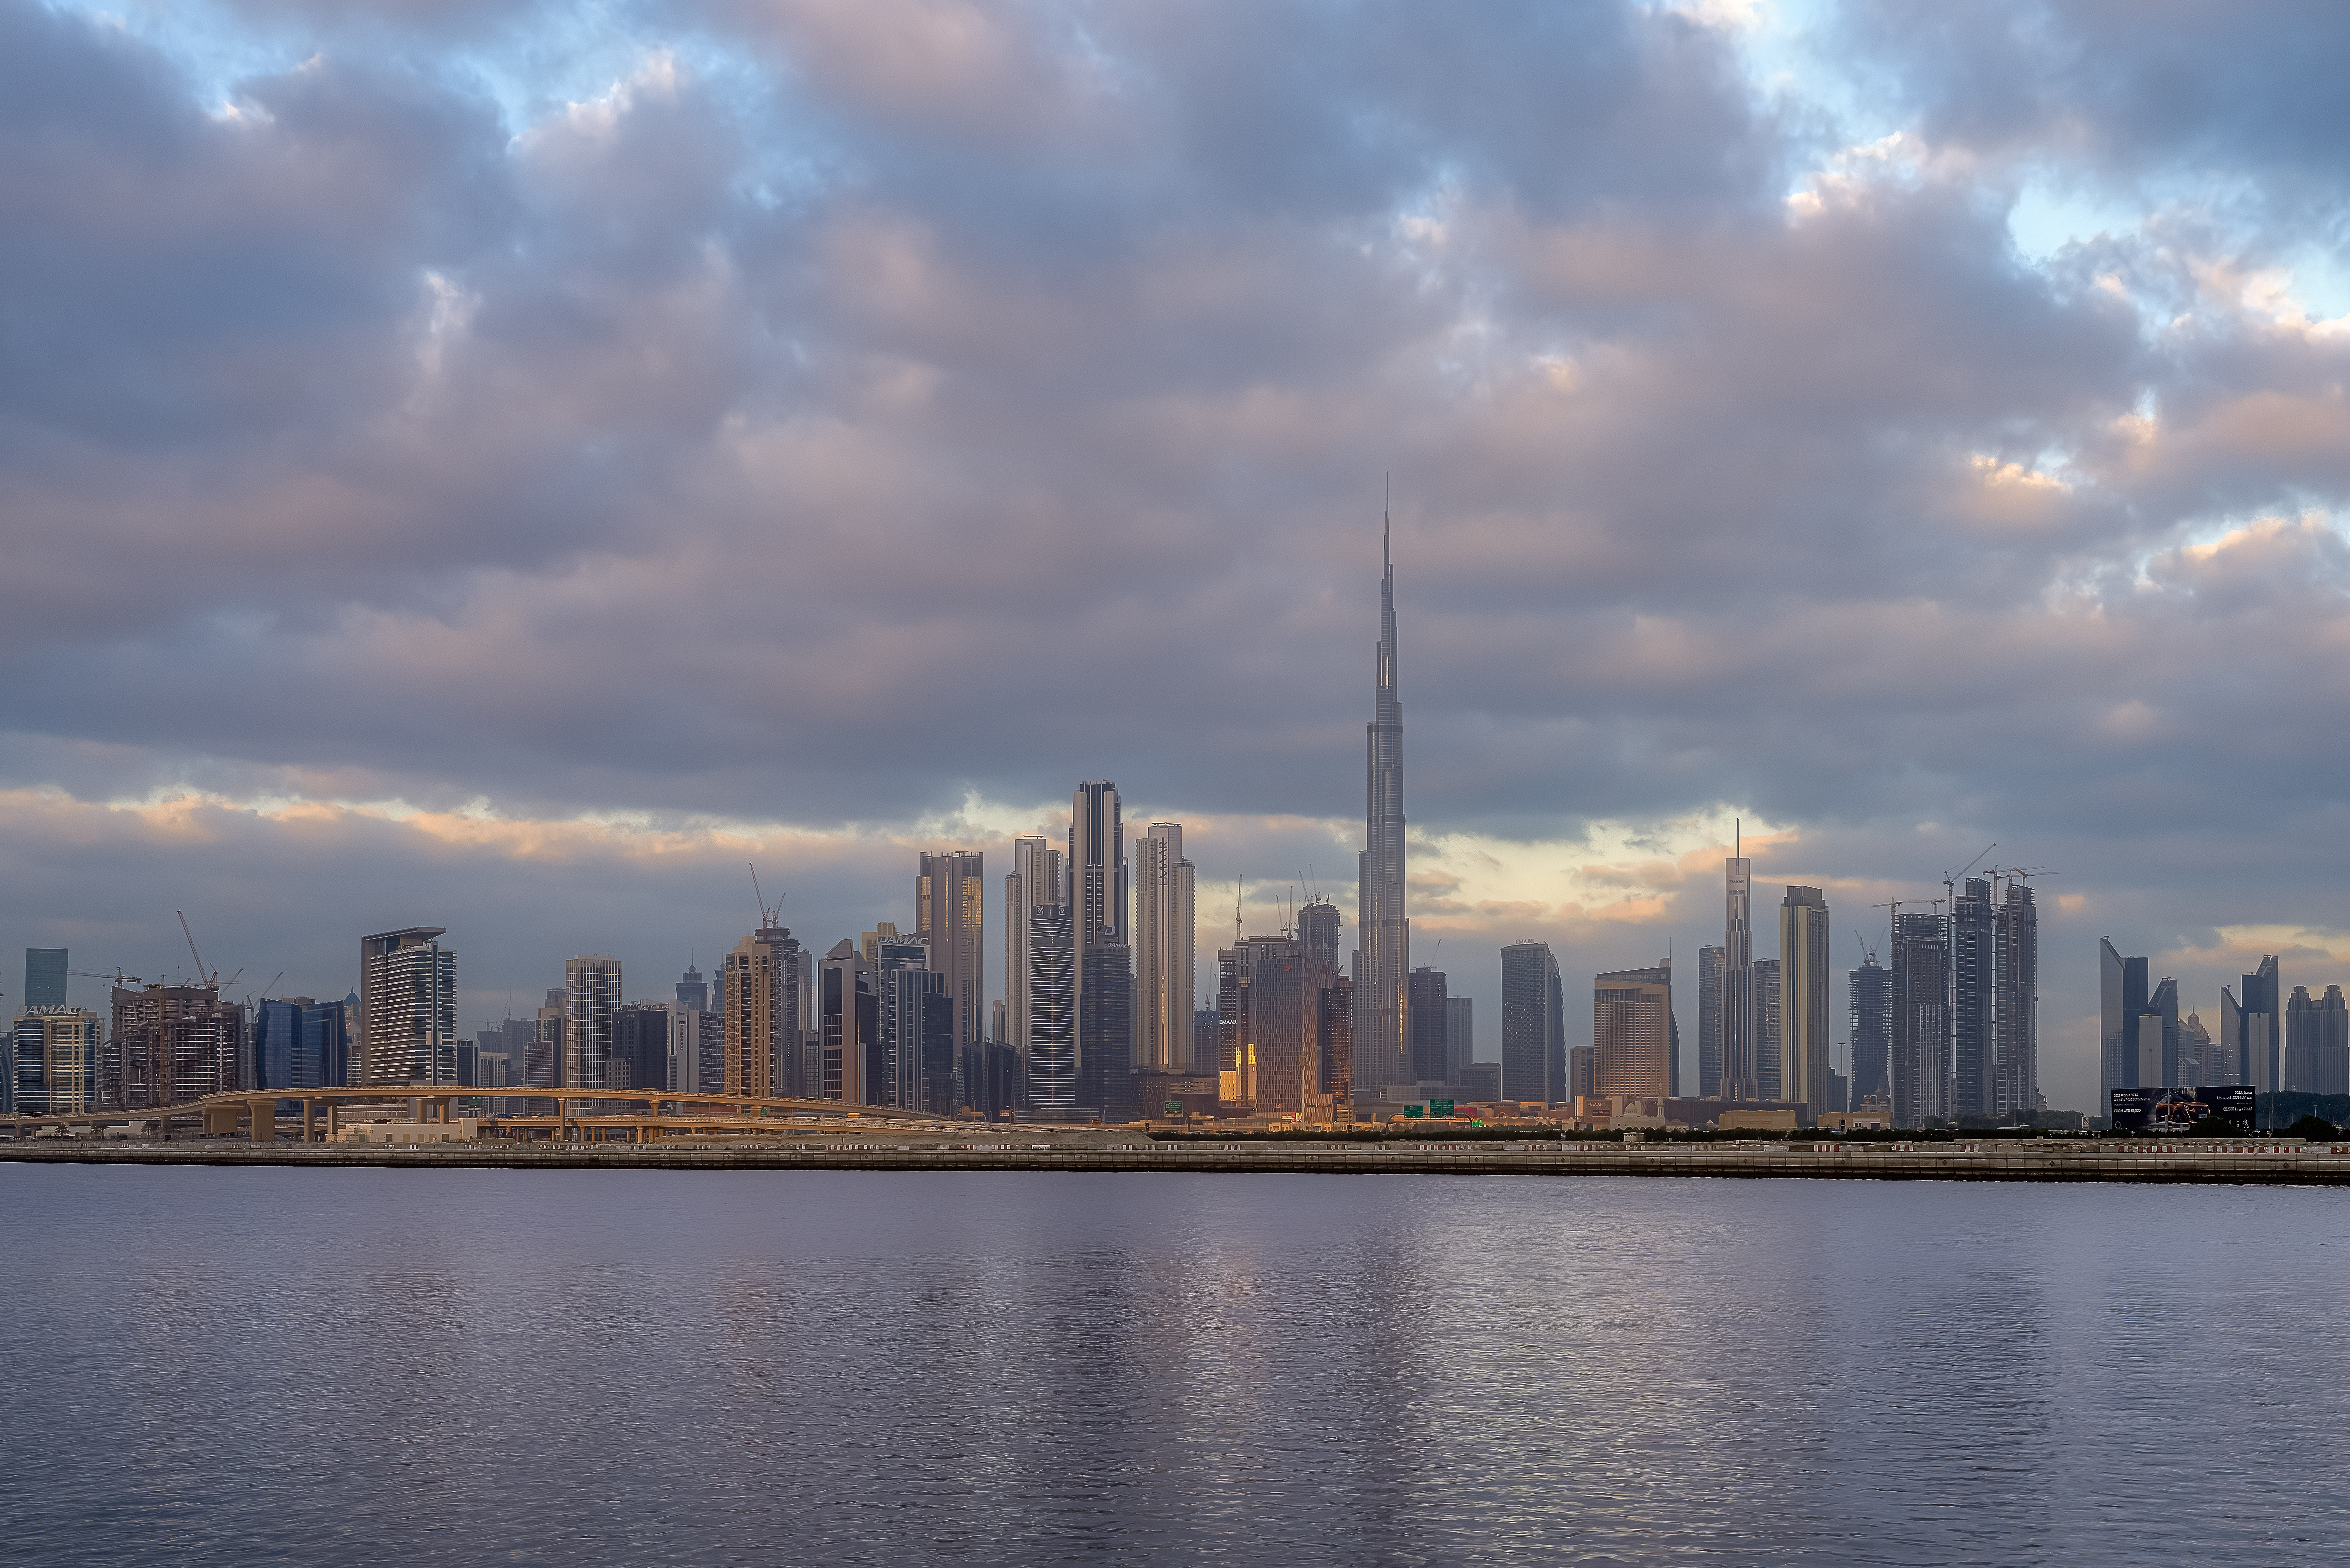 20 Best Spots For Cityscape Photography In Dubai